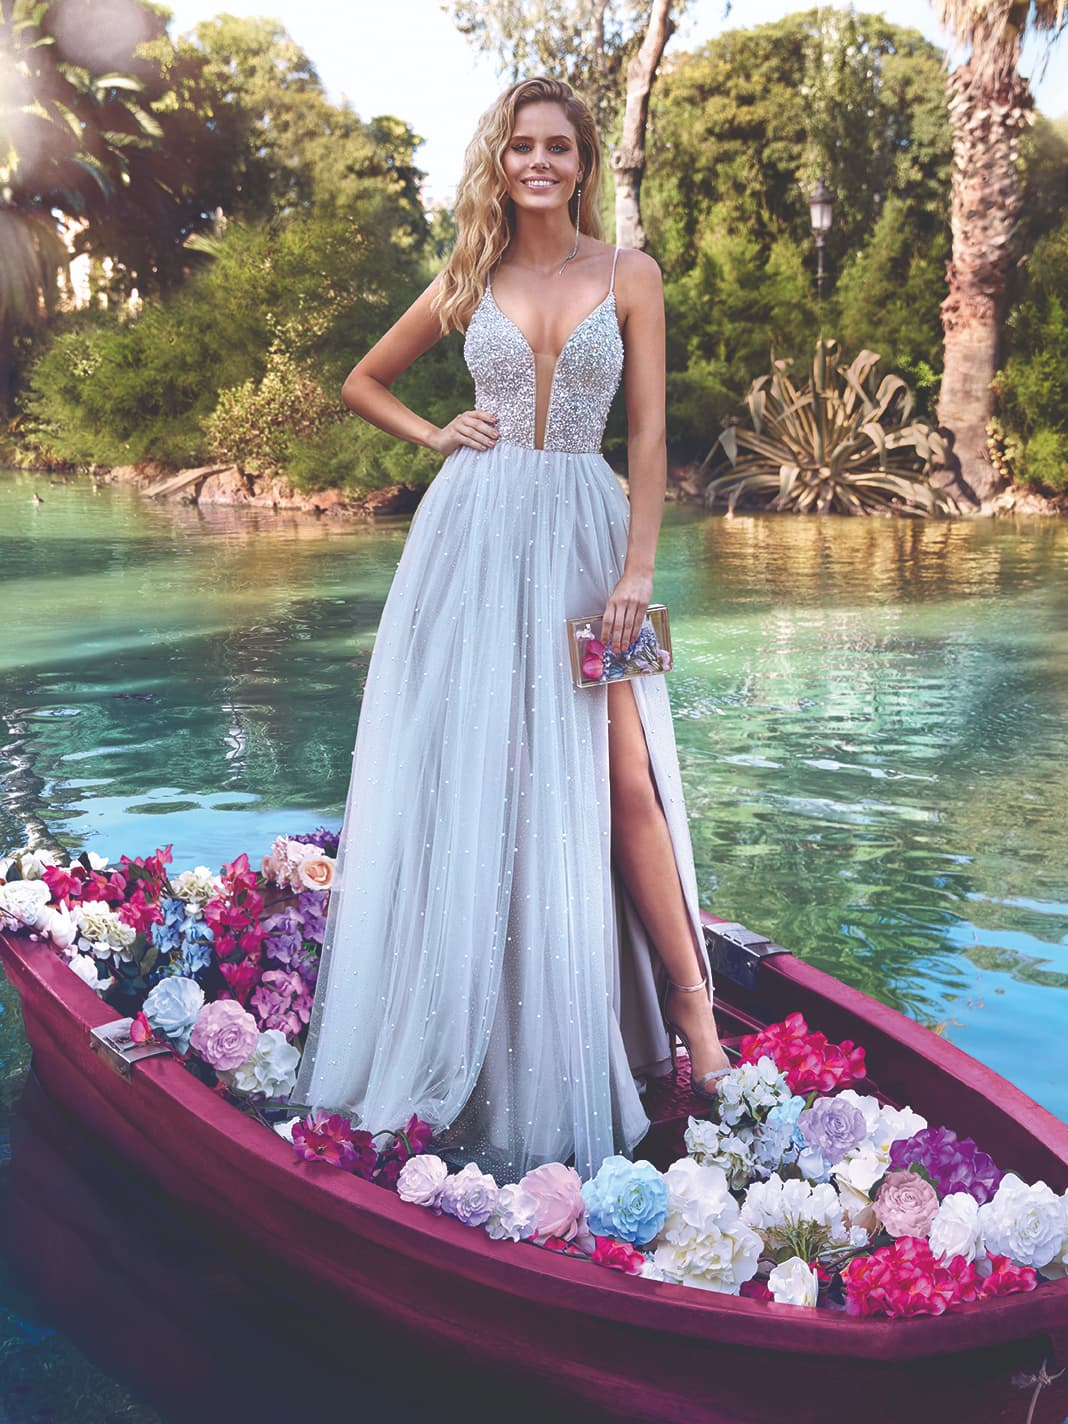 prom dress stores near me,prom dress blue,royal blue prom prom dress,prom dress,blue prom dress,fashion dresses party evening gowns beautiful,prom dresses,formal dresses,ball dresses,gowns dresses,prom dresses,formal dresses,evening dresses,graduation dresses,prom dress stores near me,grad dresses,cute prom dresses,light blue prom dresses,unique prom dresses,formal dress shops near me,formal dresses for weddings,simple prom dresses,formal dress shops,prom dress,ball dress,prom dresses dresses,prom dresses,formal dresses,ball dresses,formal dresses,